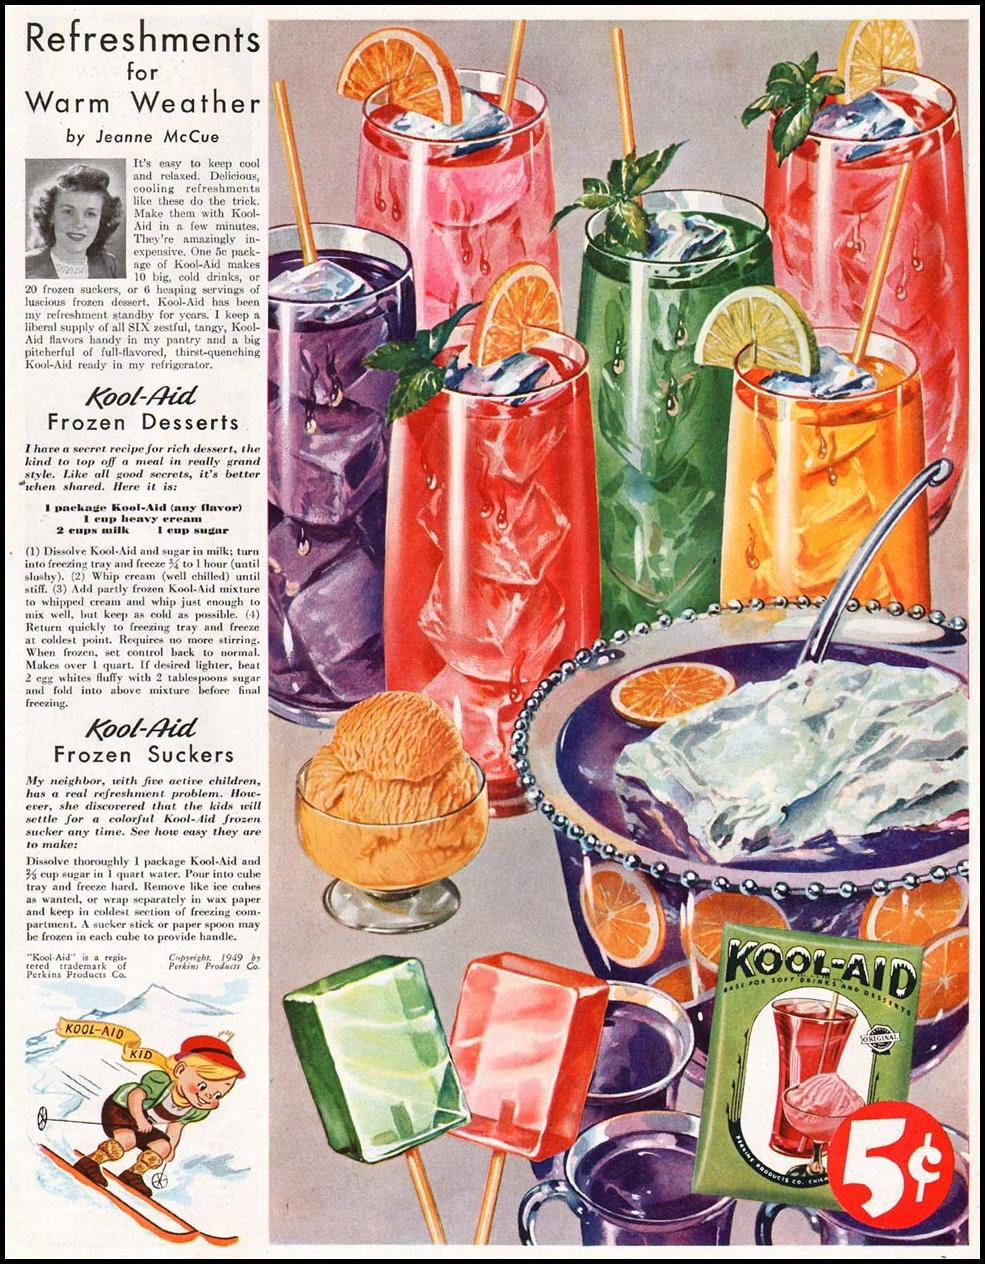 KOOL-AID SOFT DRINK MIX LADIES' HOME JOURNAL 07/01/1949 p. 17